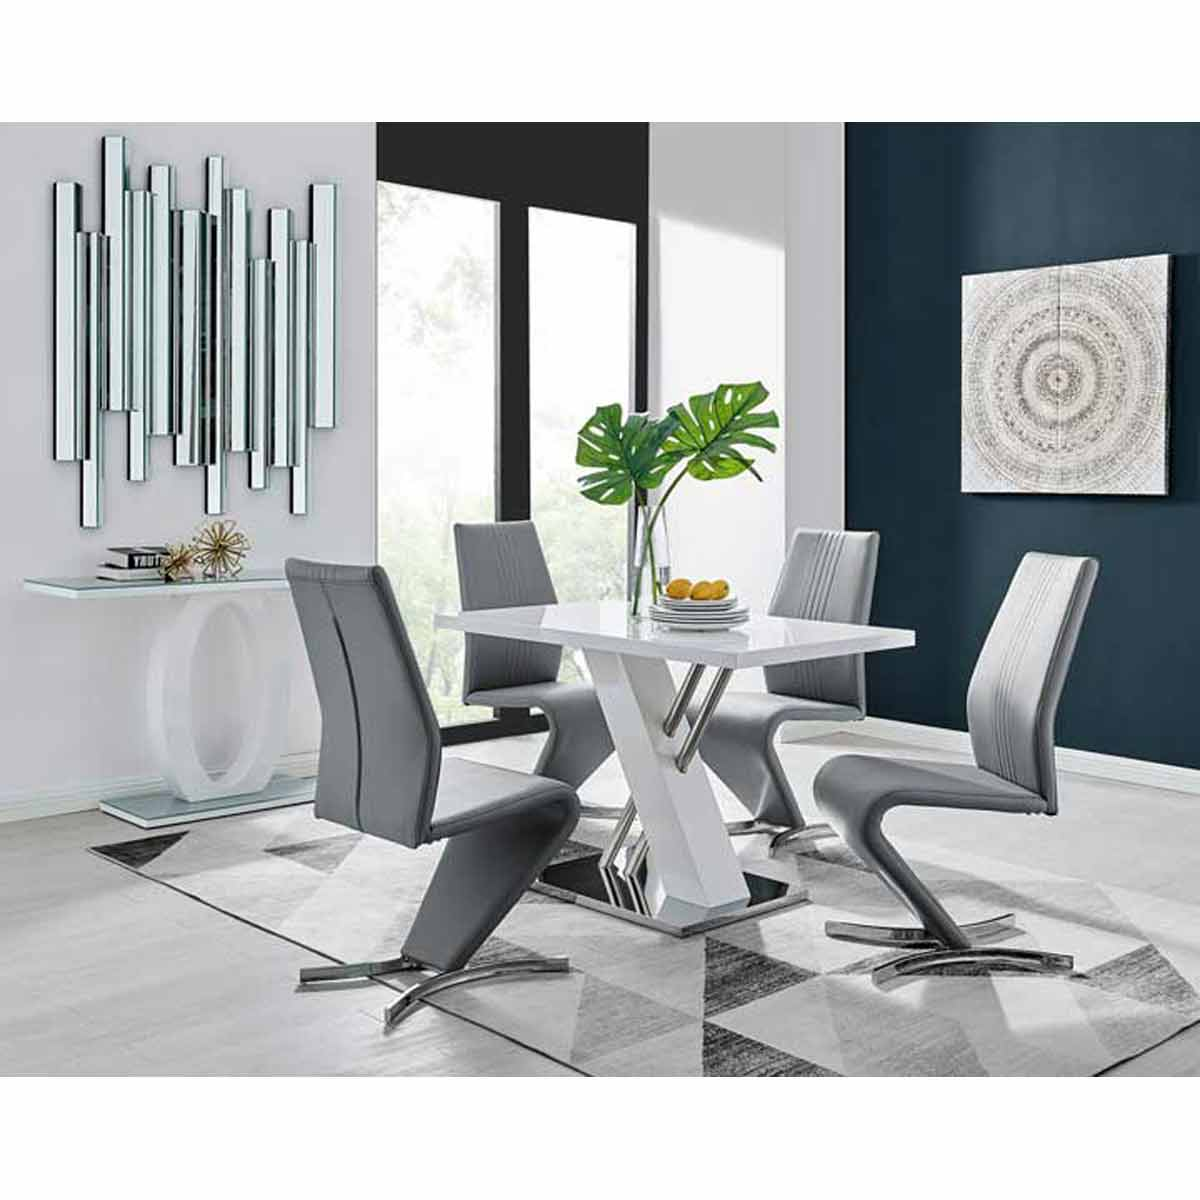 Furniture Box Sorrento 4 White High Gloss And Stainless Steel Dining Table And 4 Elephant Grey Luxury Willow Chairs Set